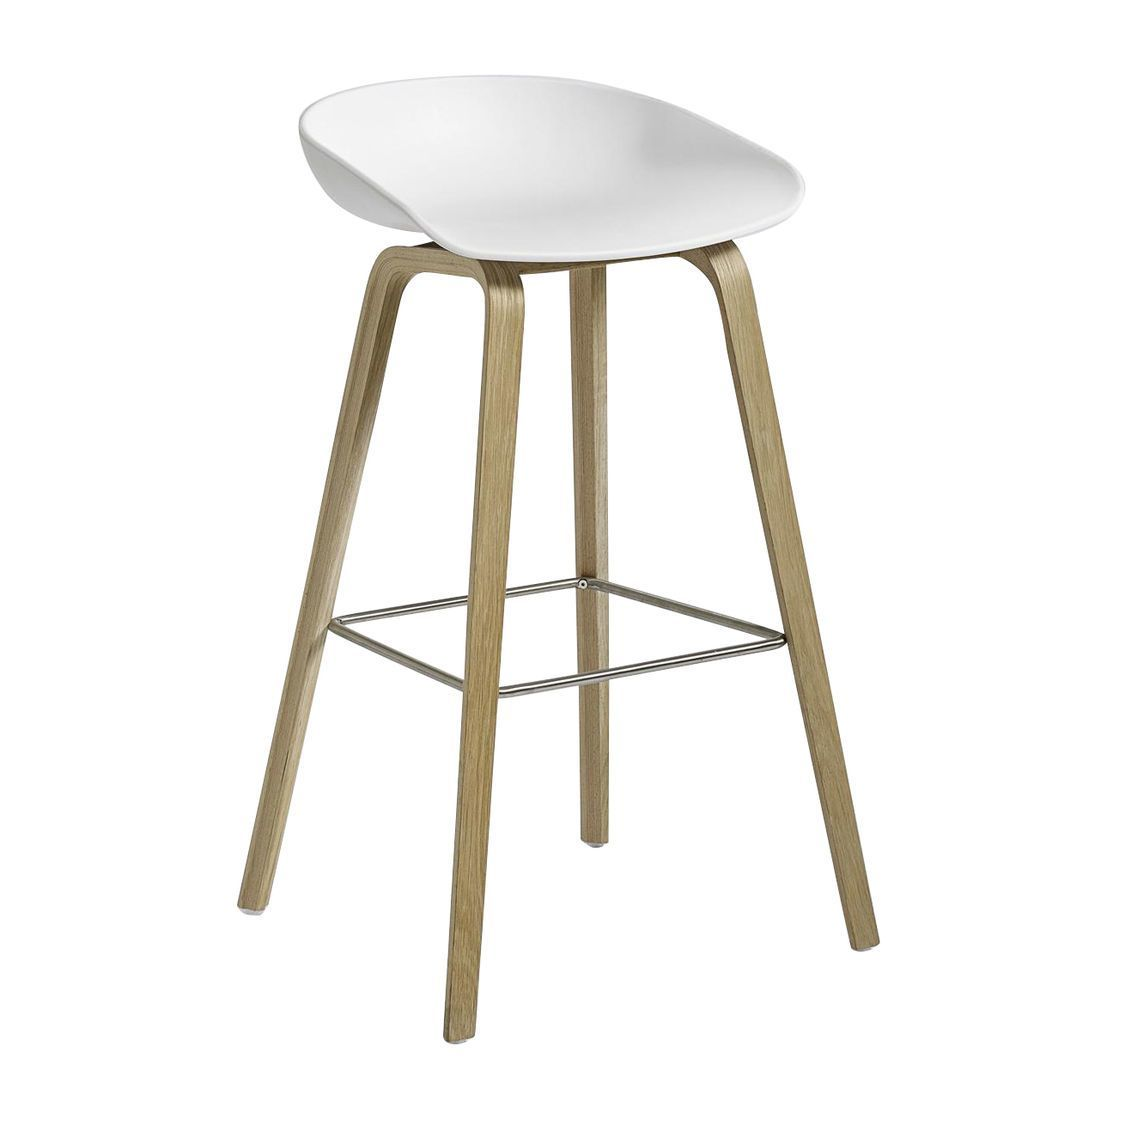 About A Stool Aas32 Bar Stool 75cm Hay Ambientedirect Com